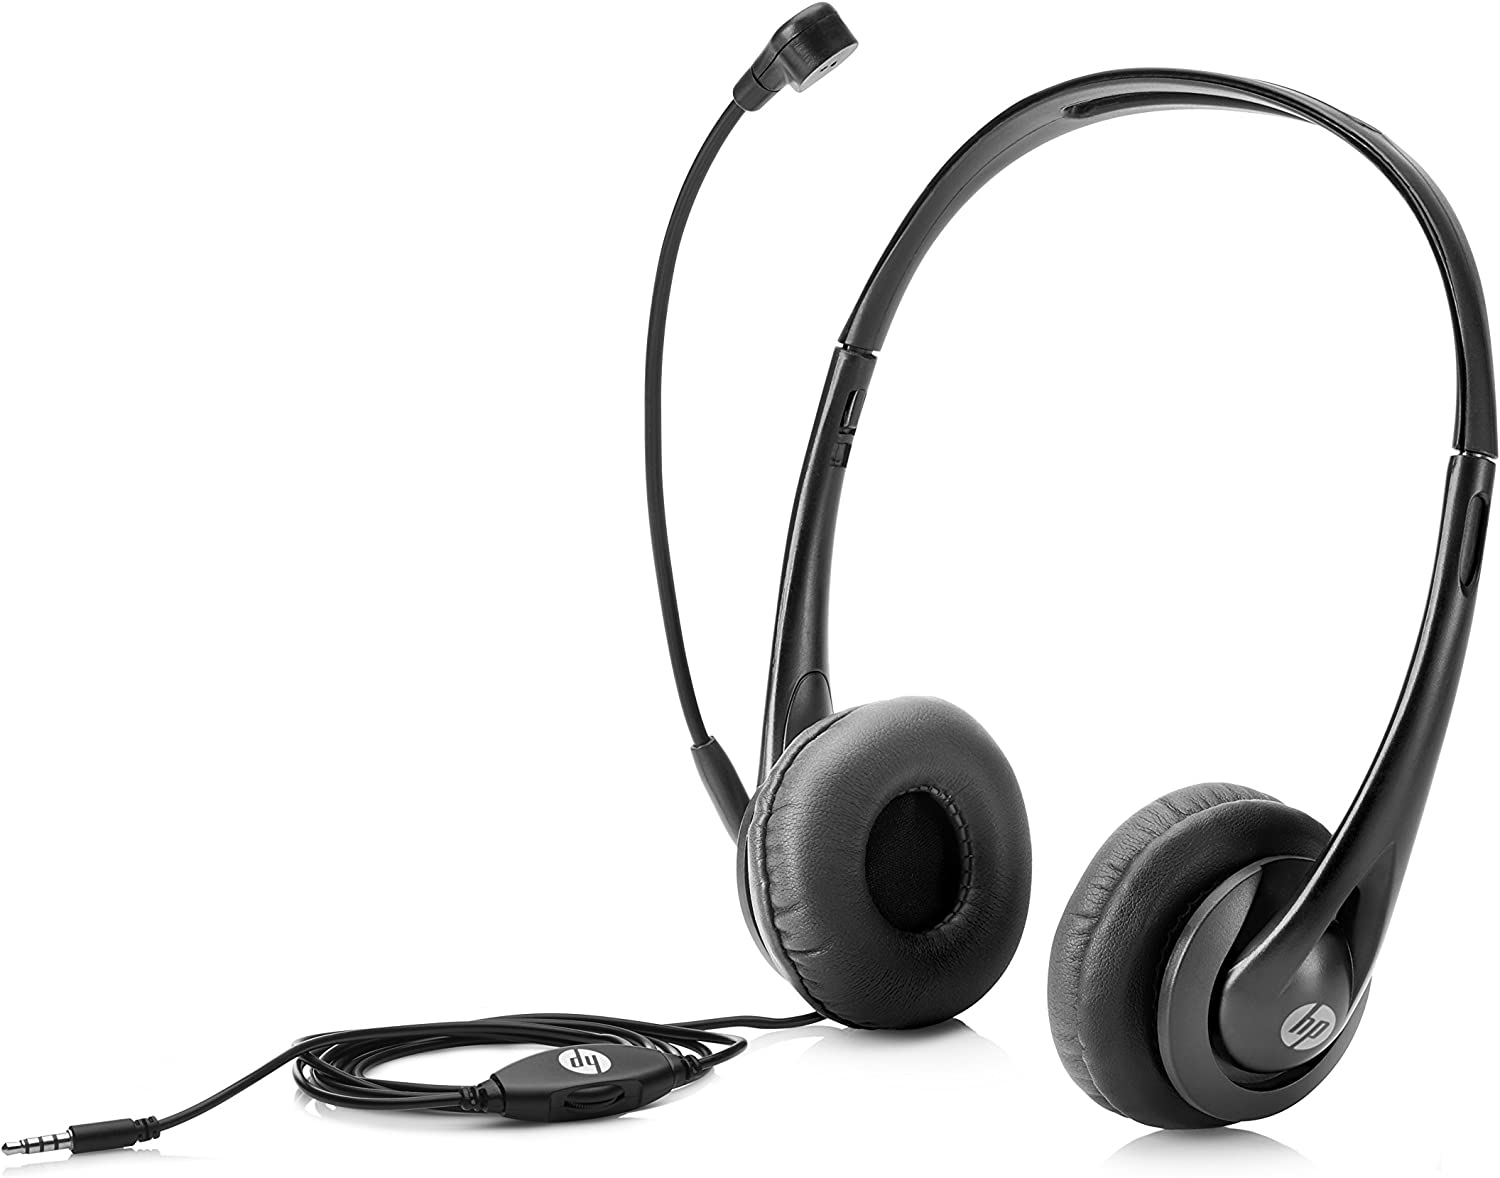 HP Stereo Headset (USB Connector)